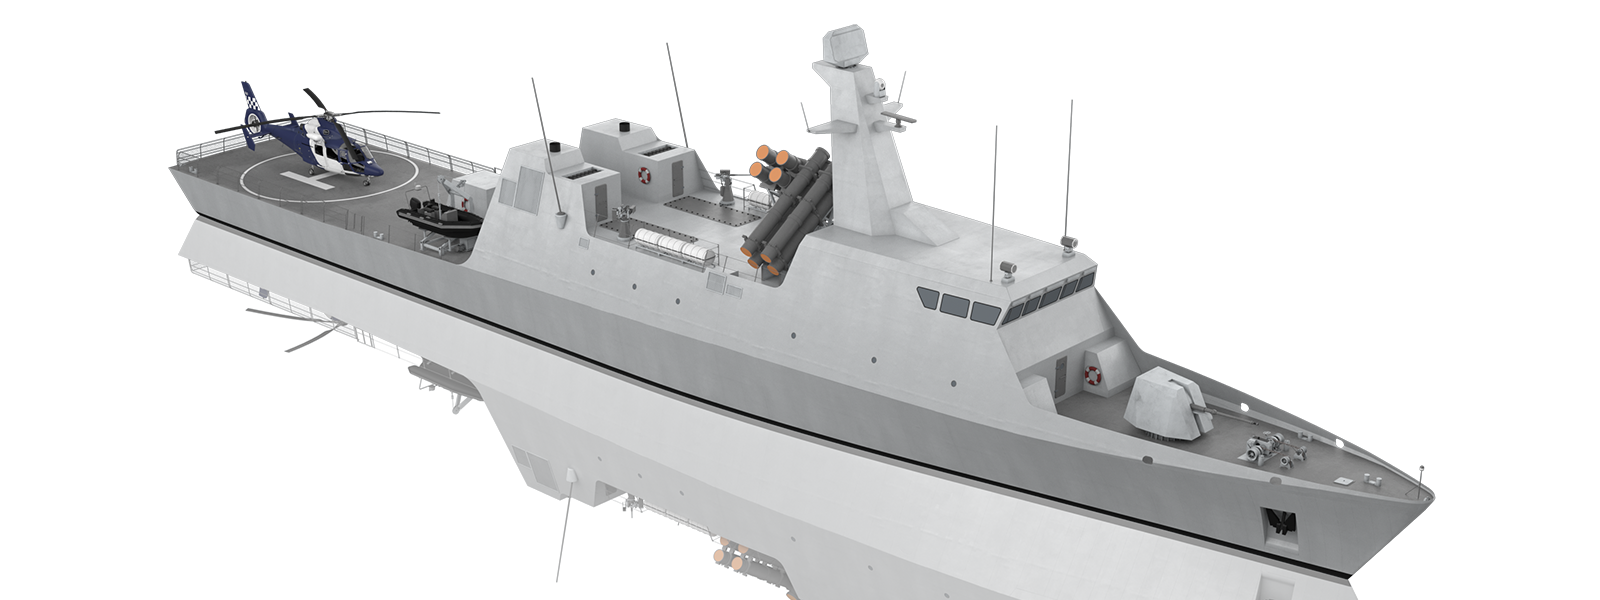 Israel Shipyards - Experience that empowers seagoing